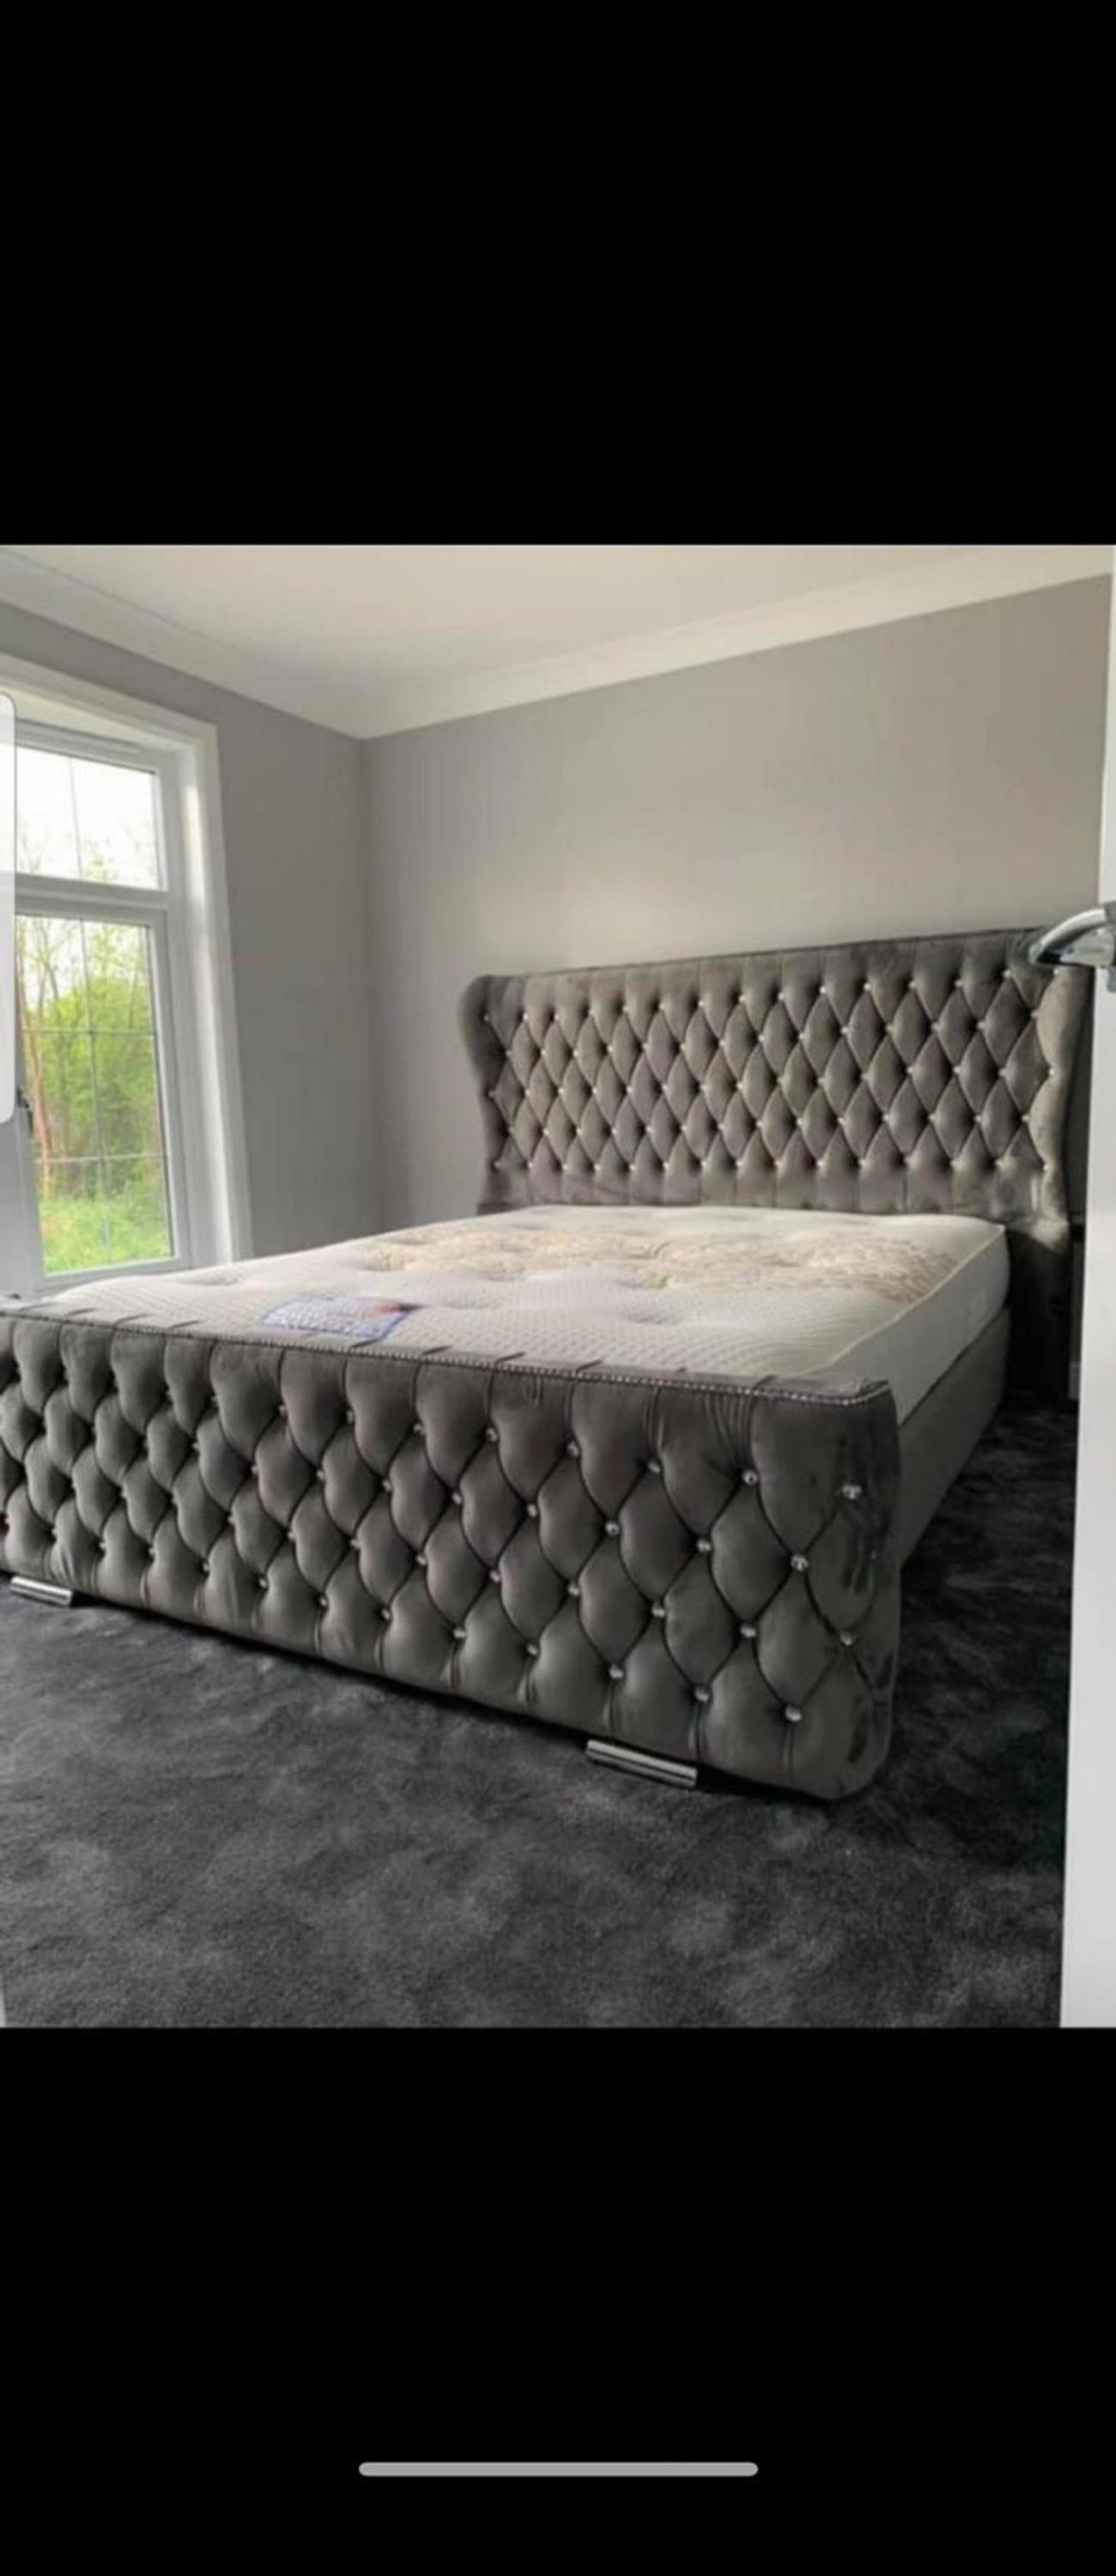 Picture of: Special Offer Luxury Bed With Free Delivery In M21 Manchester For 240 00 For Sale Shpock